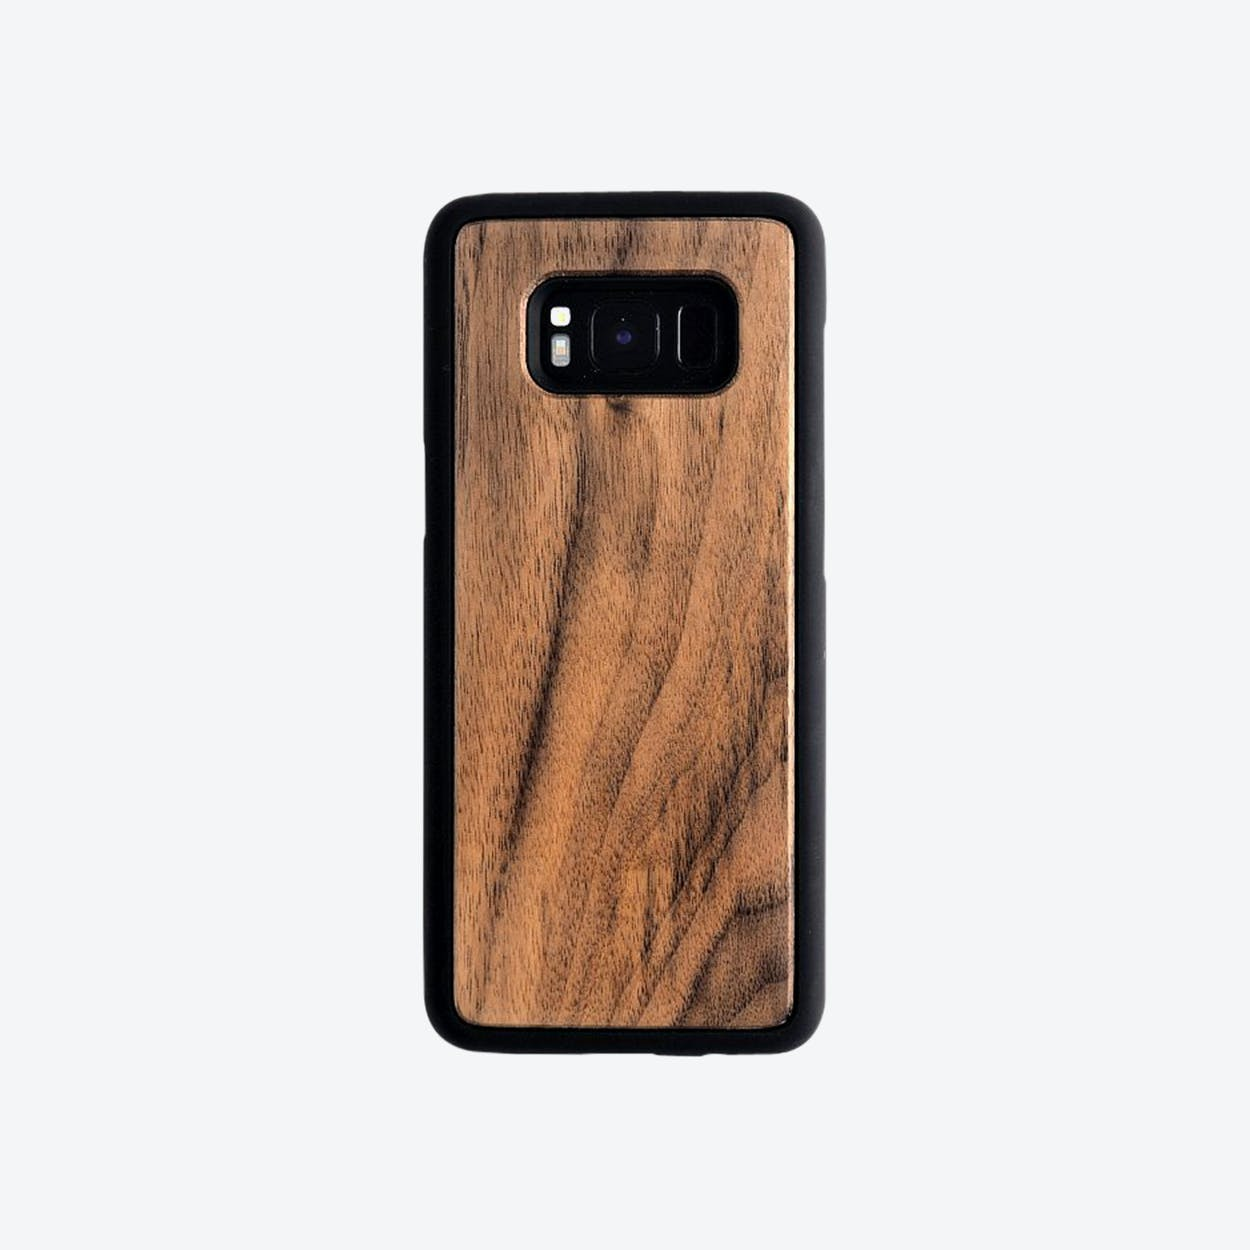 Samsung Bumper Phone Case in Walnut